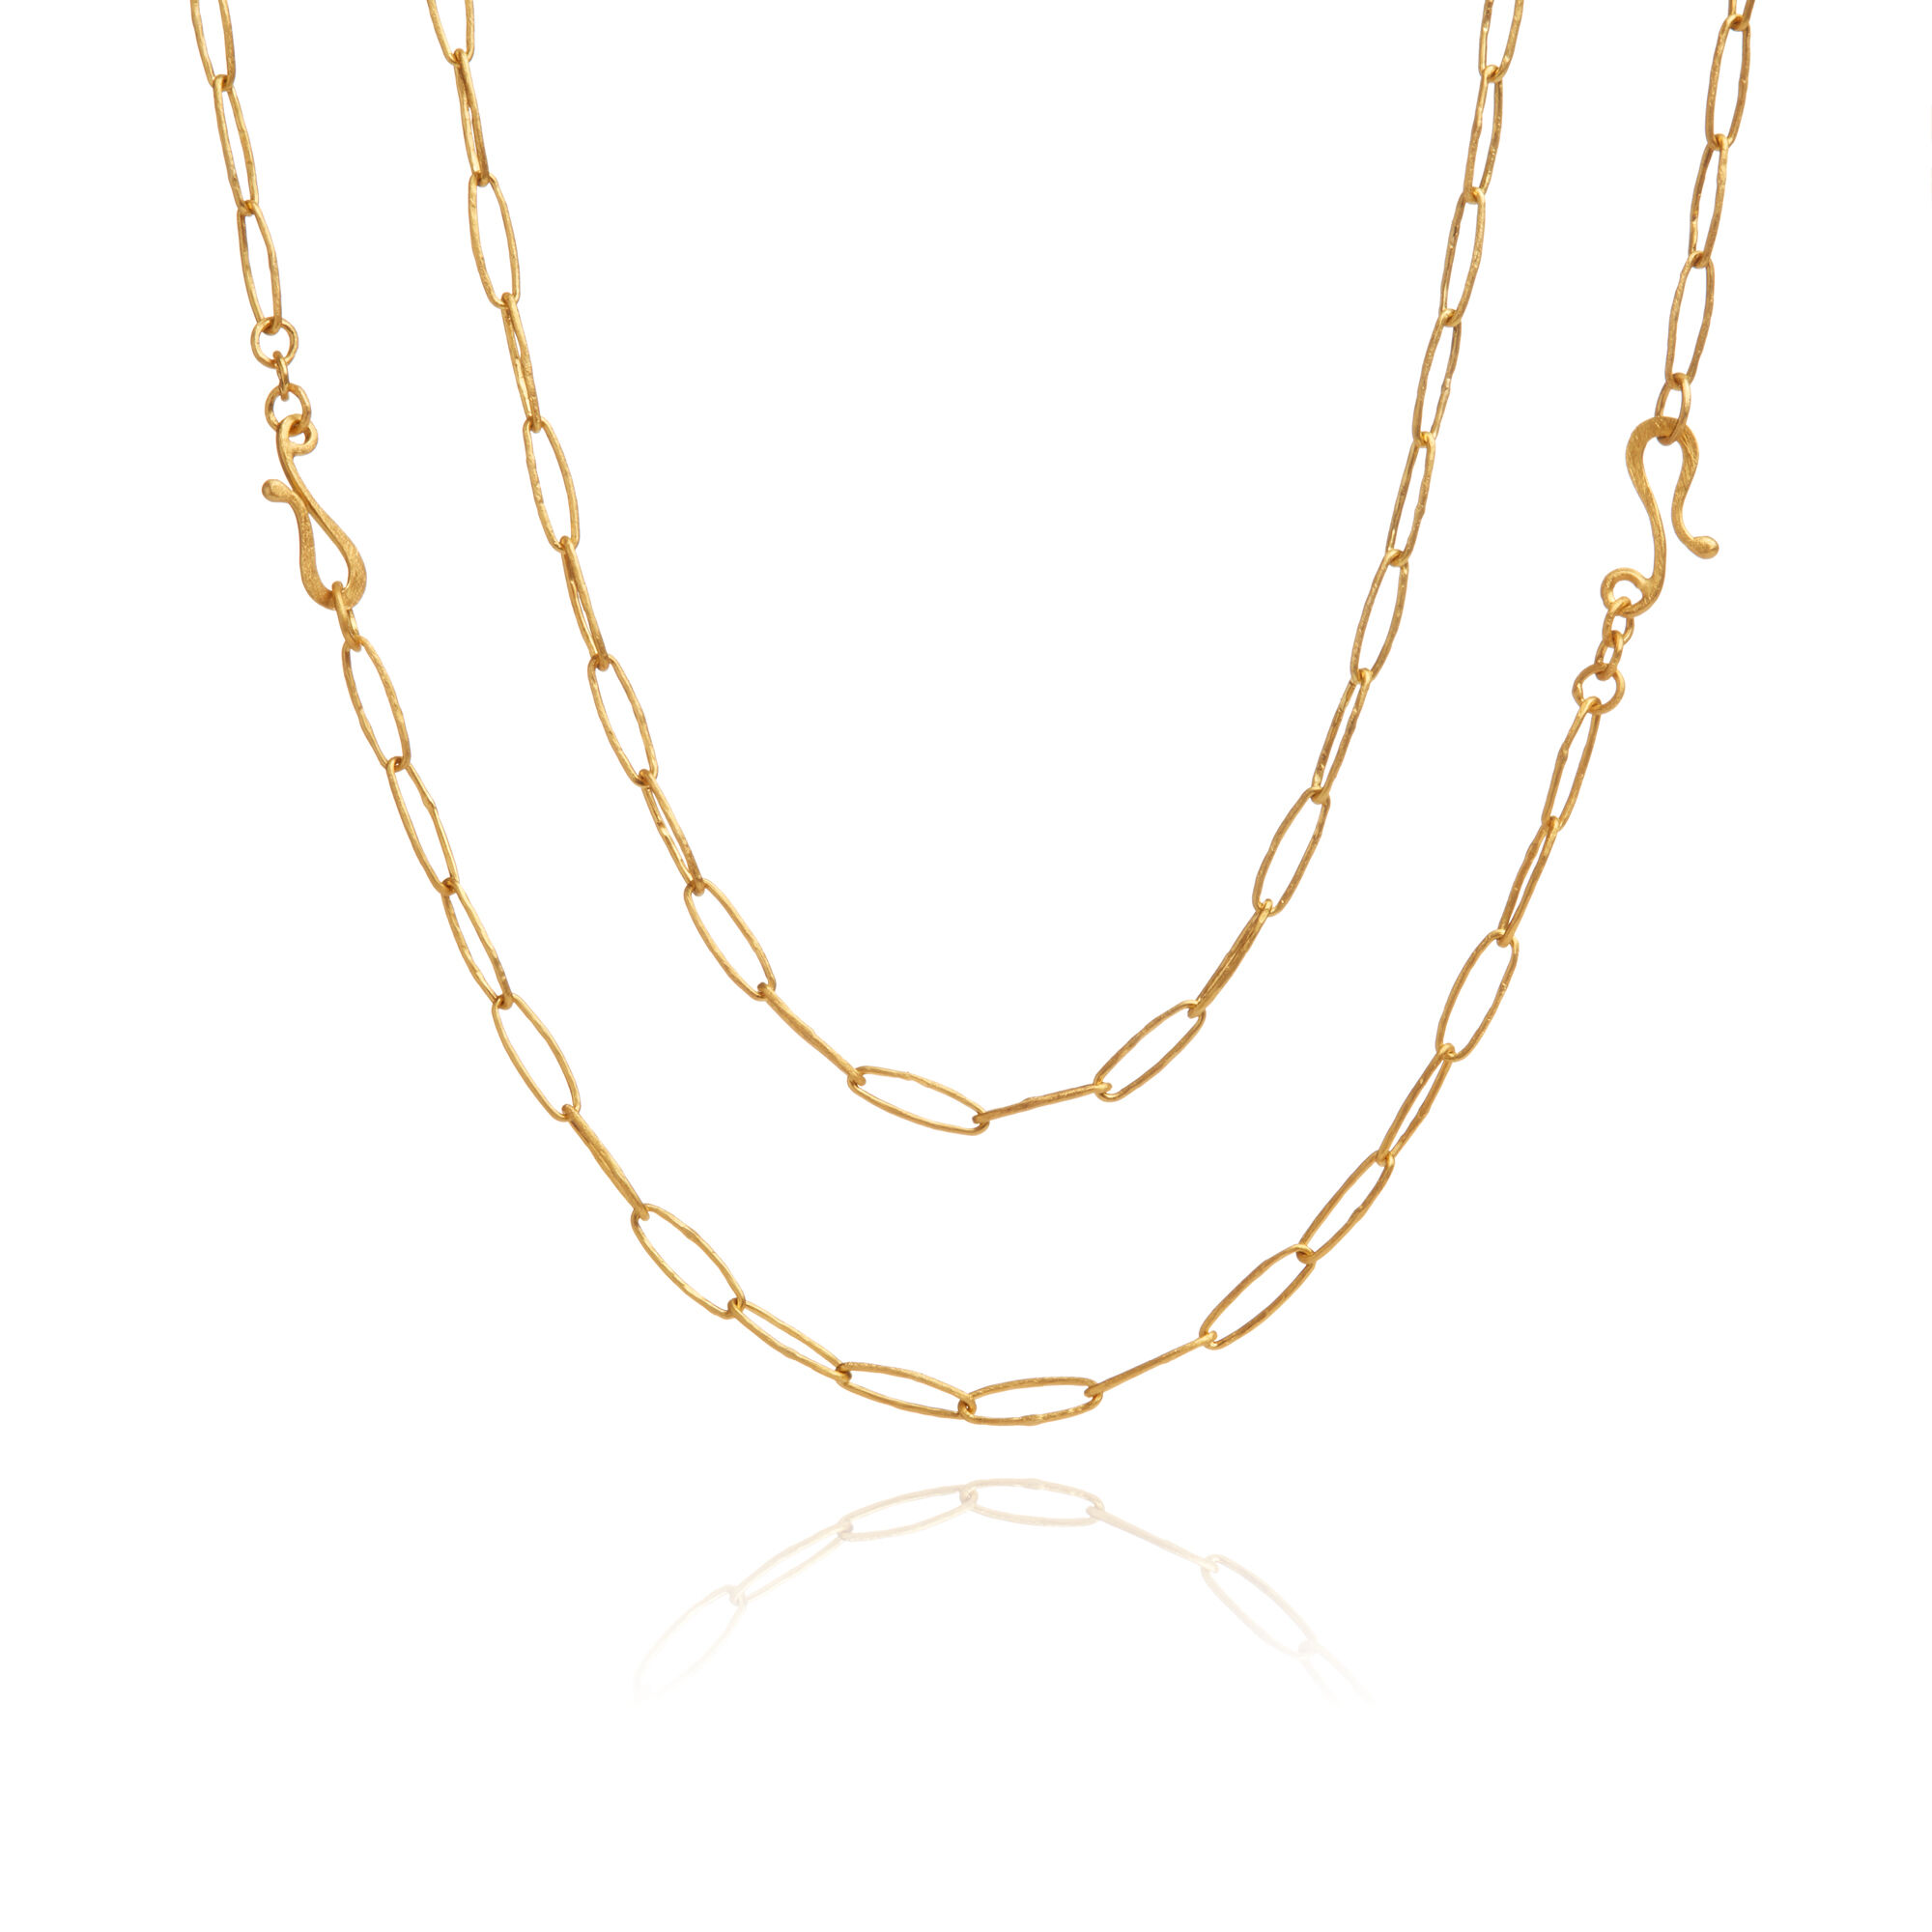 18ct Gold Organza Charm Necklace — Annoushka US